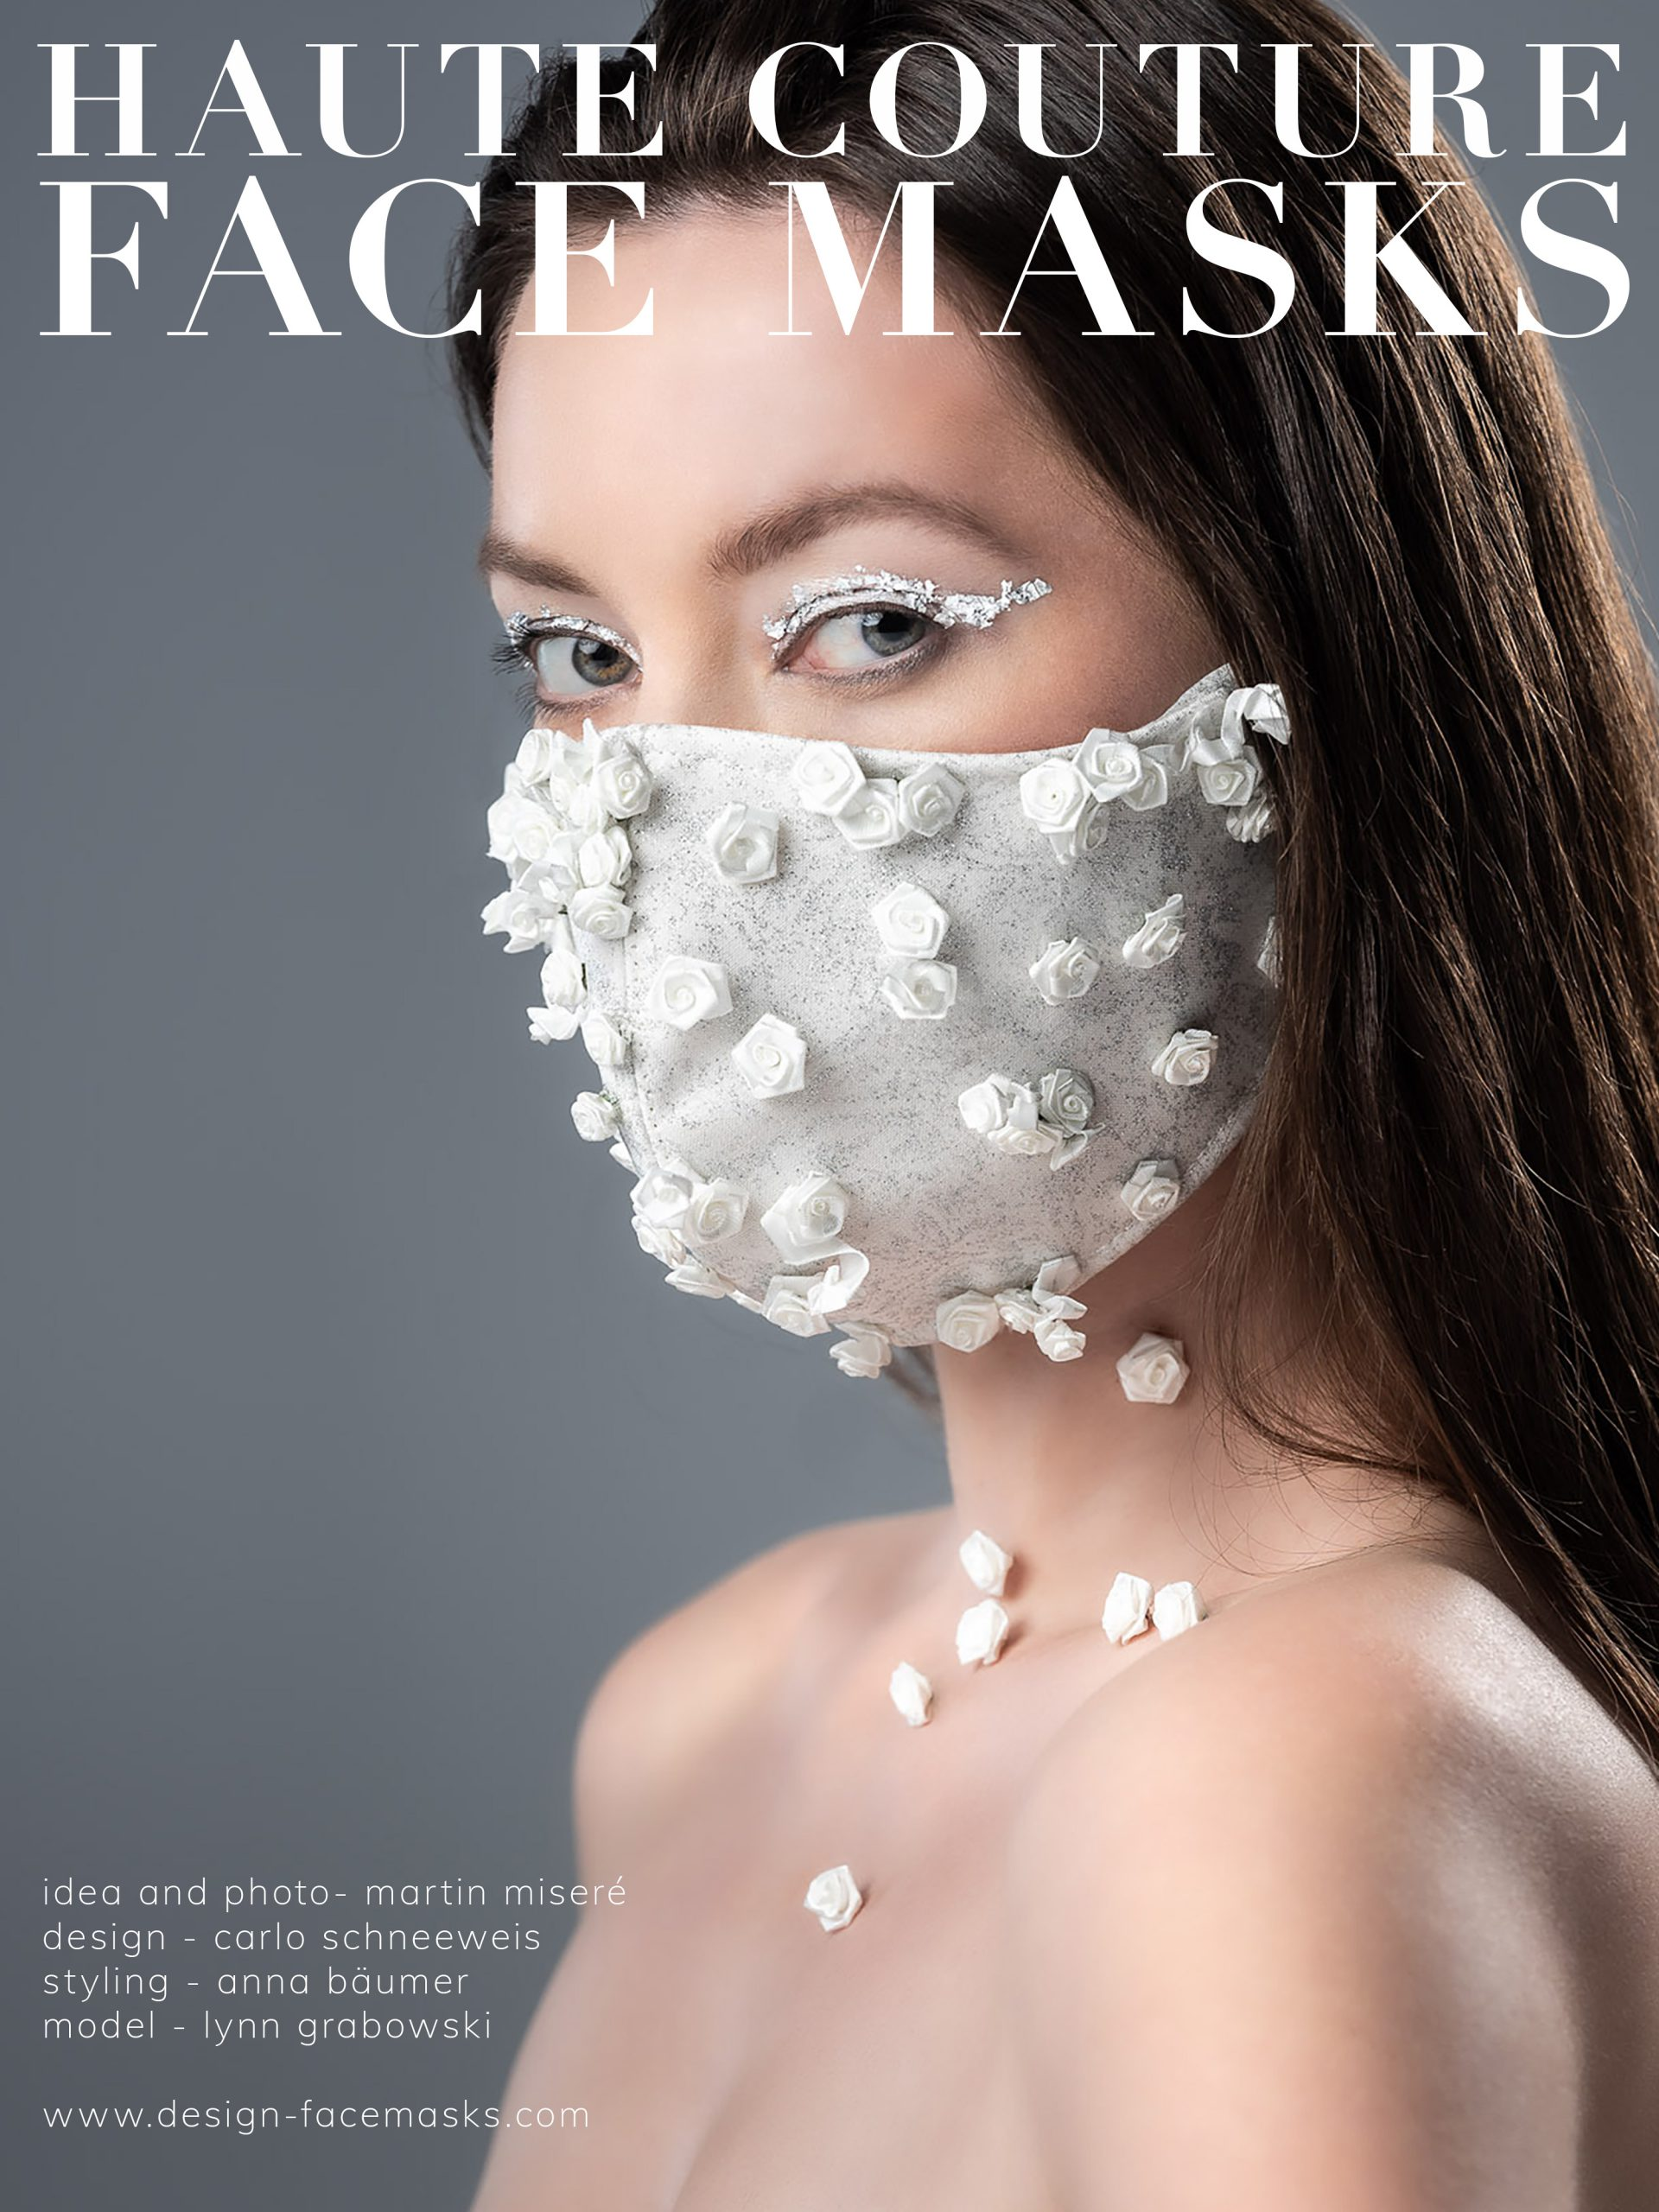 Design Facemask Model Lynn Grabowski wearing facemask of fashion designer Carlo Schneeweis photographed by Martin Misere